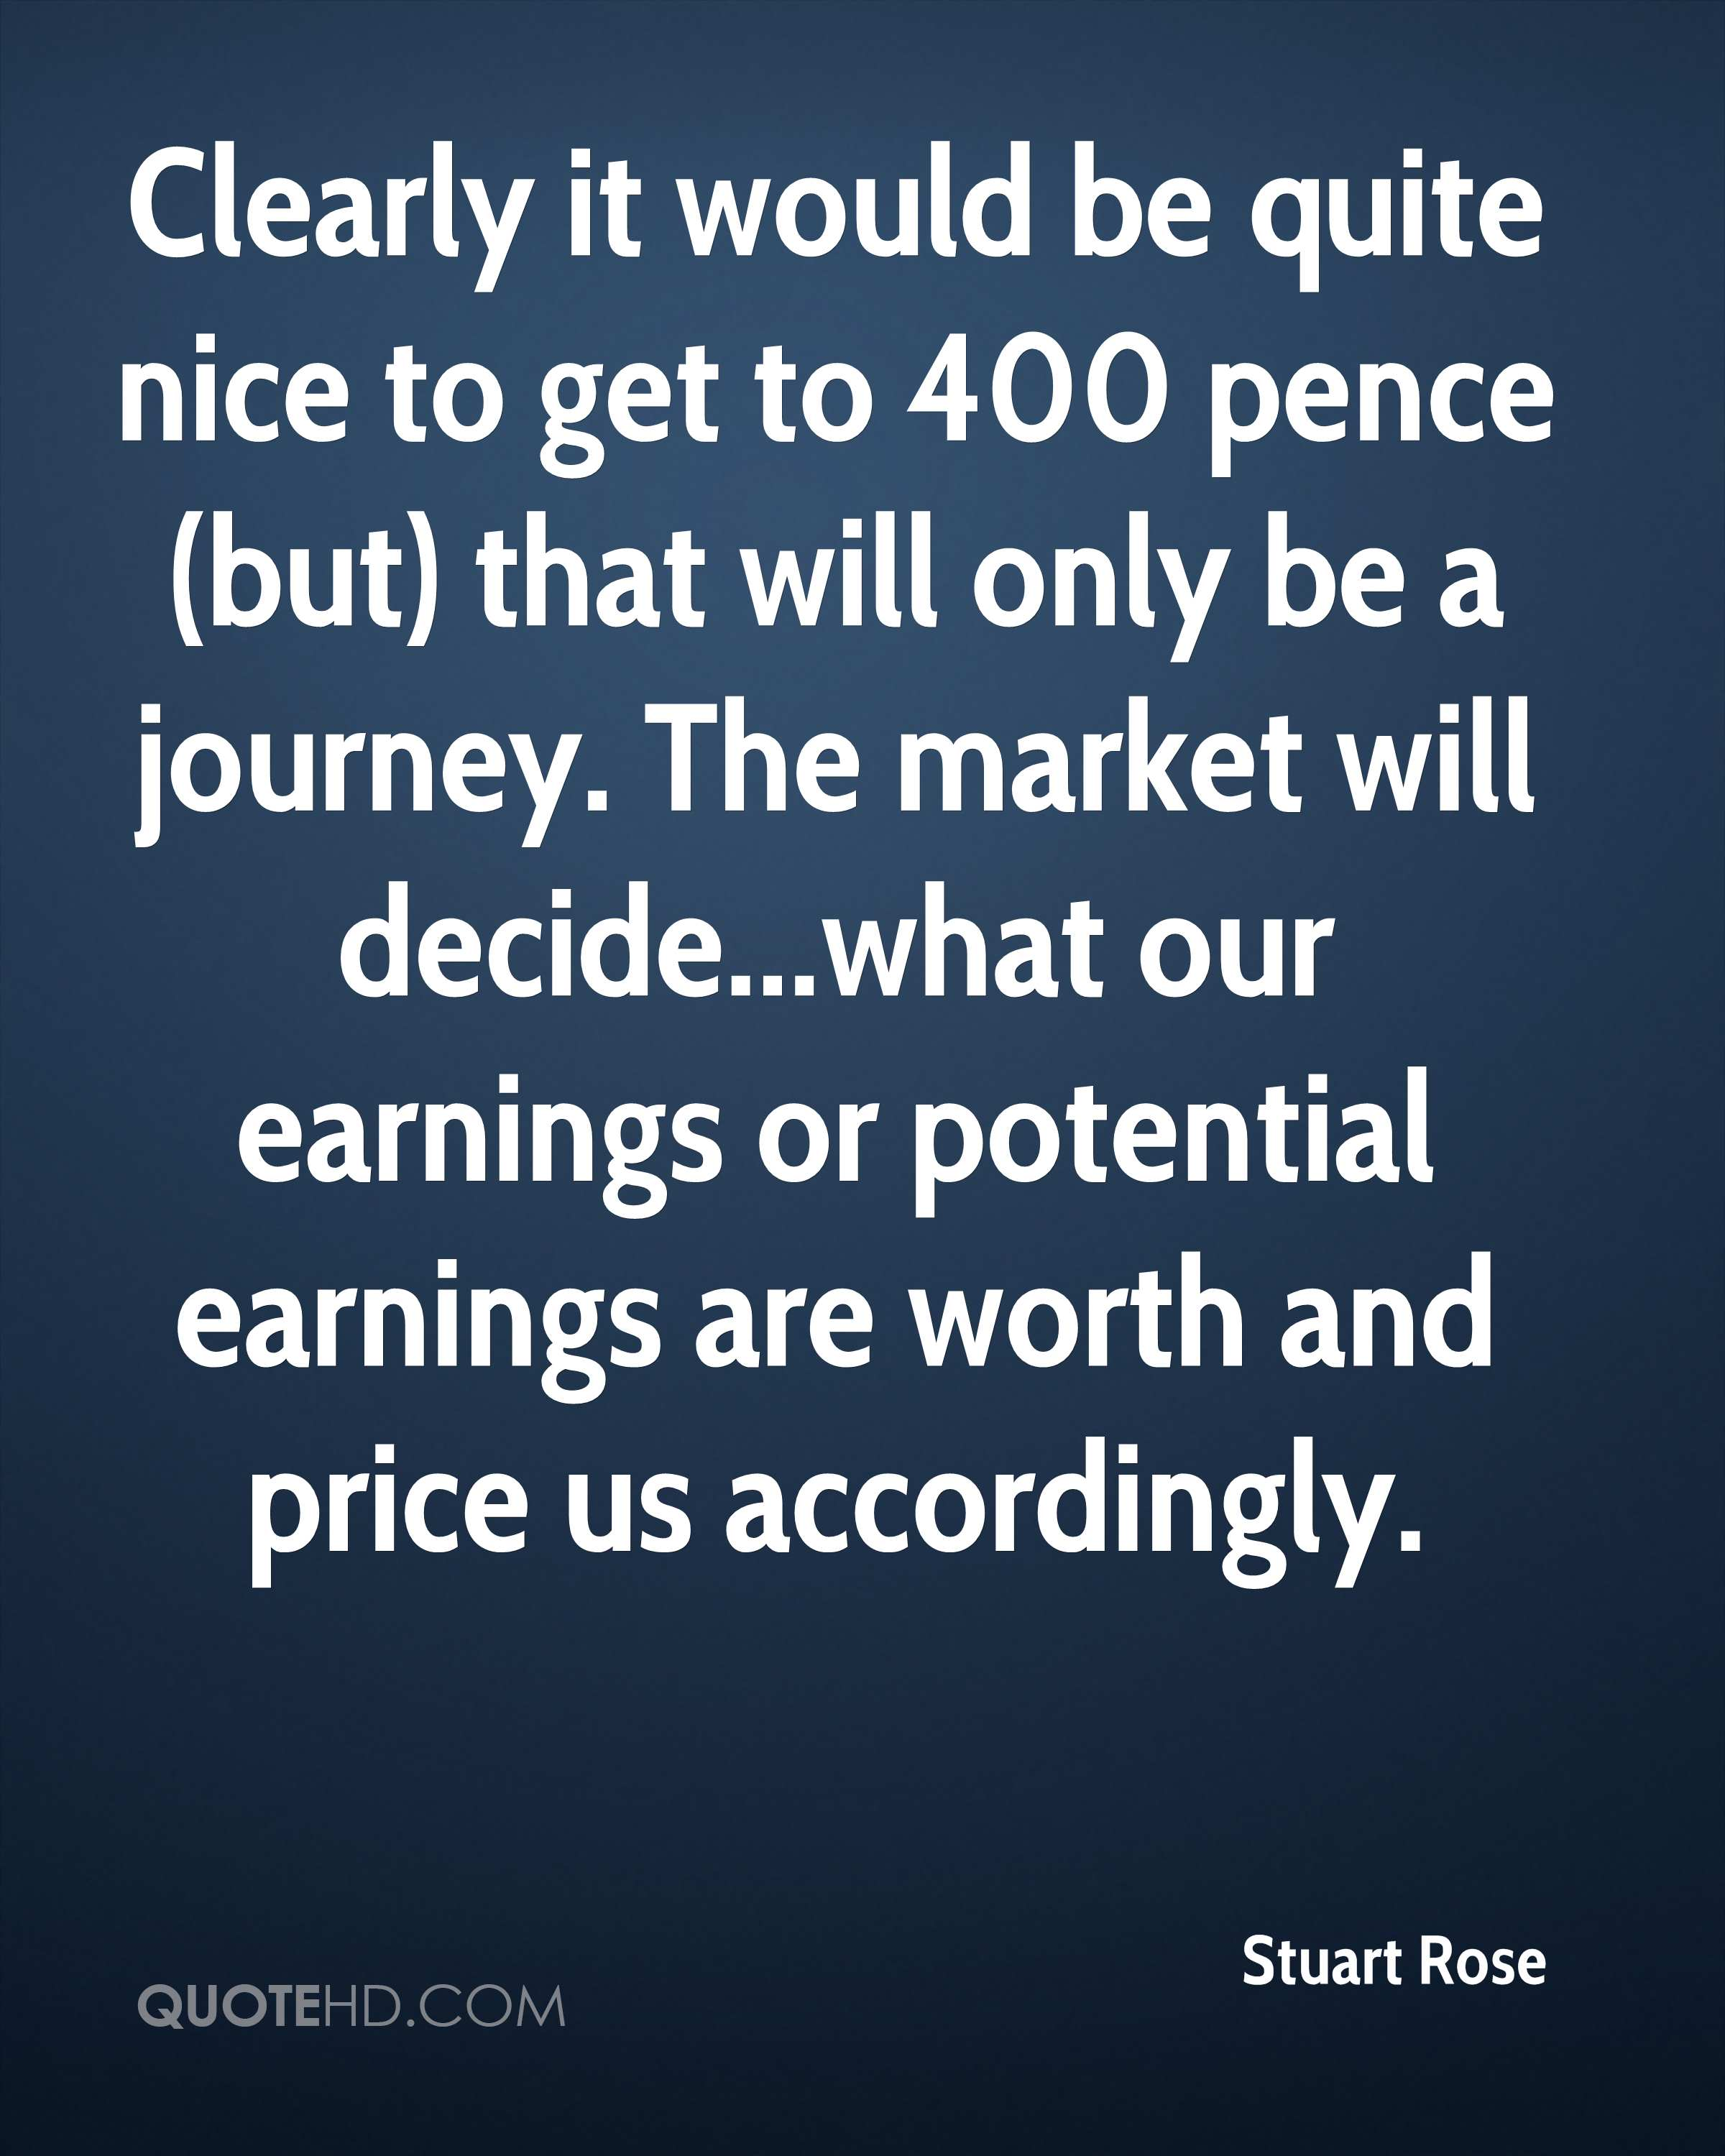 Clearly it would be quite nice to get to 400 pence (but) that will only be a journey. The market will decide...what our earnings or potential earnings are worth and price us accordingly.